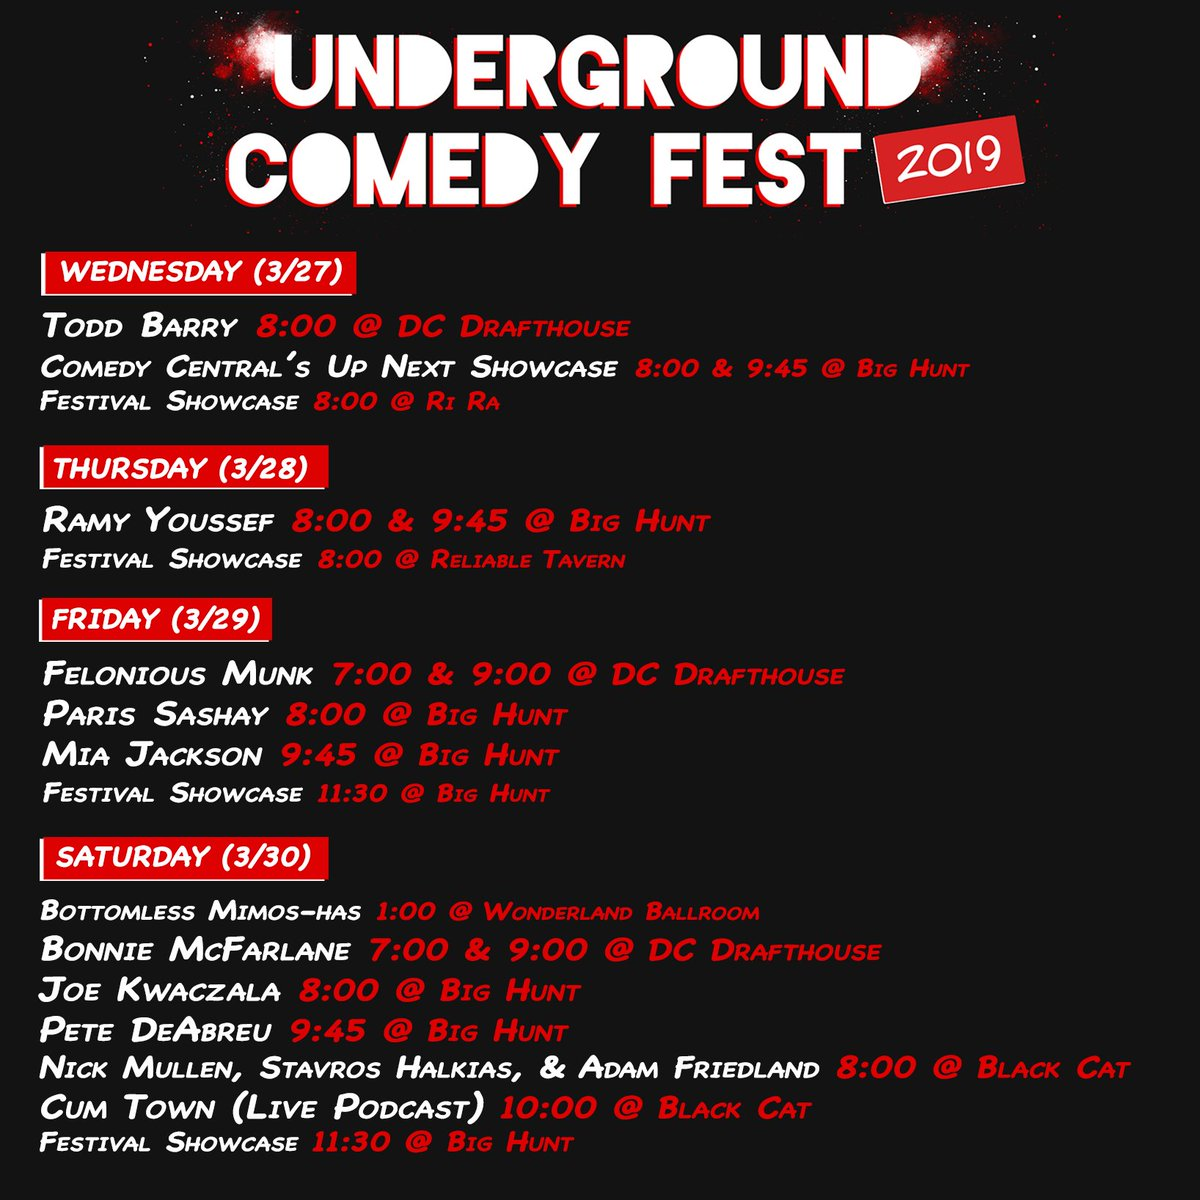 AND WE'RE BACK!!! Look at that beautiful 2019 schedule. Go get those tickets at http://www.undergroundcomedyfest.com .